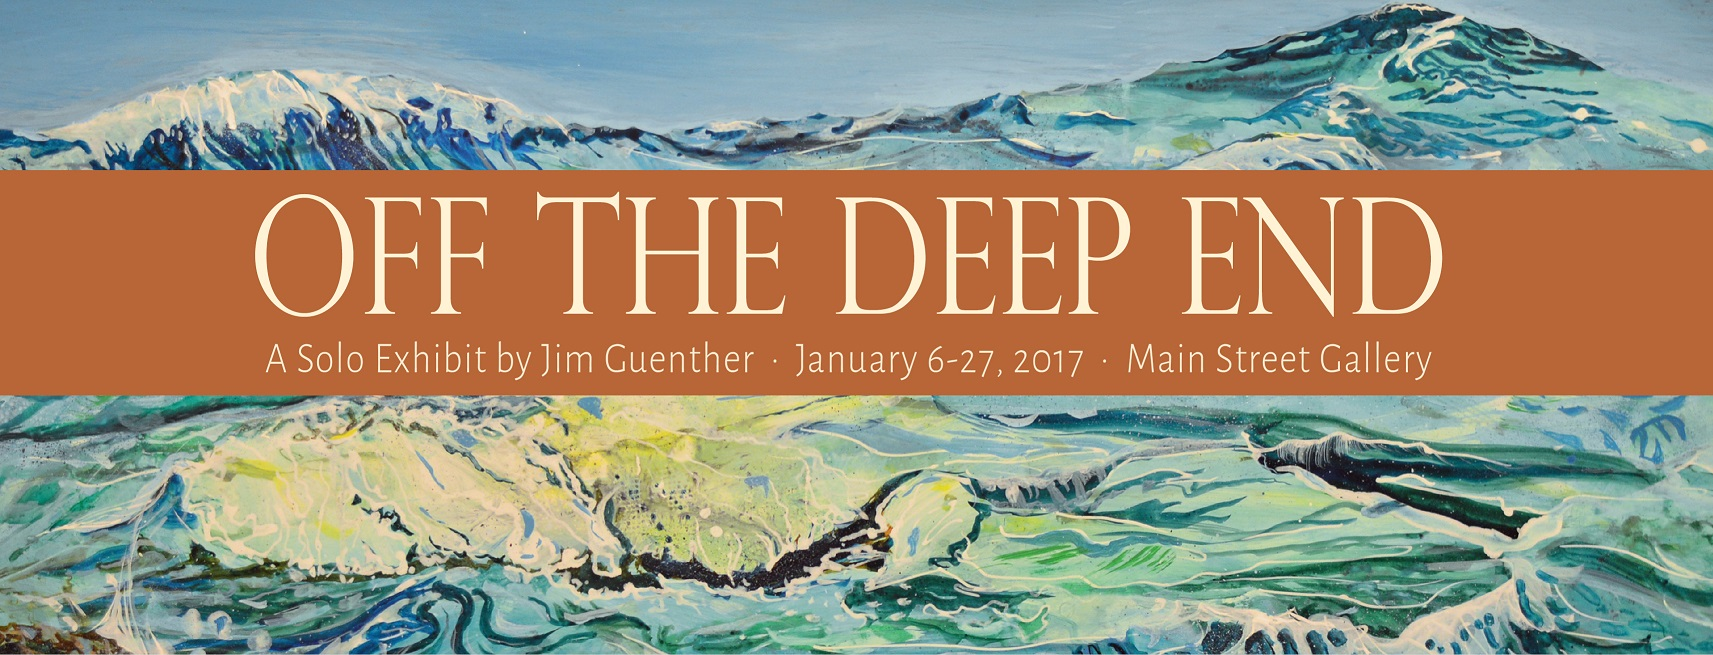 """January 6-27, 2017: Jim Guenther – """"Off the Deep End"""""""